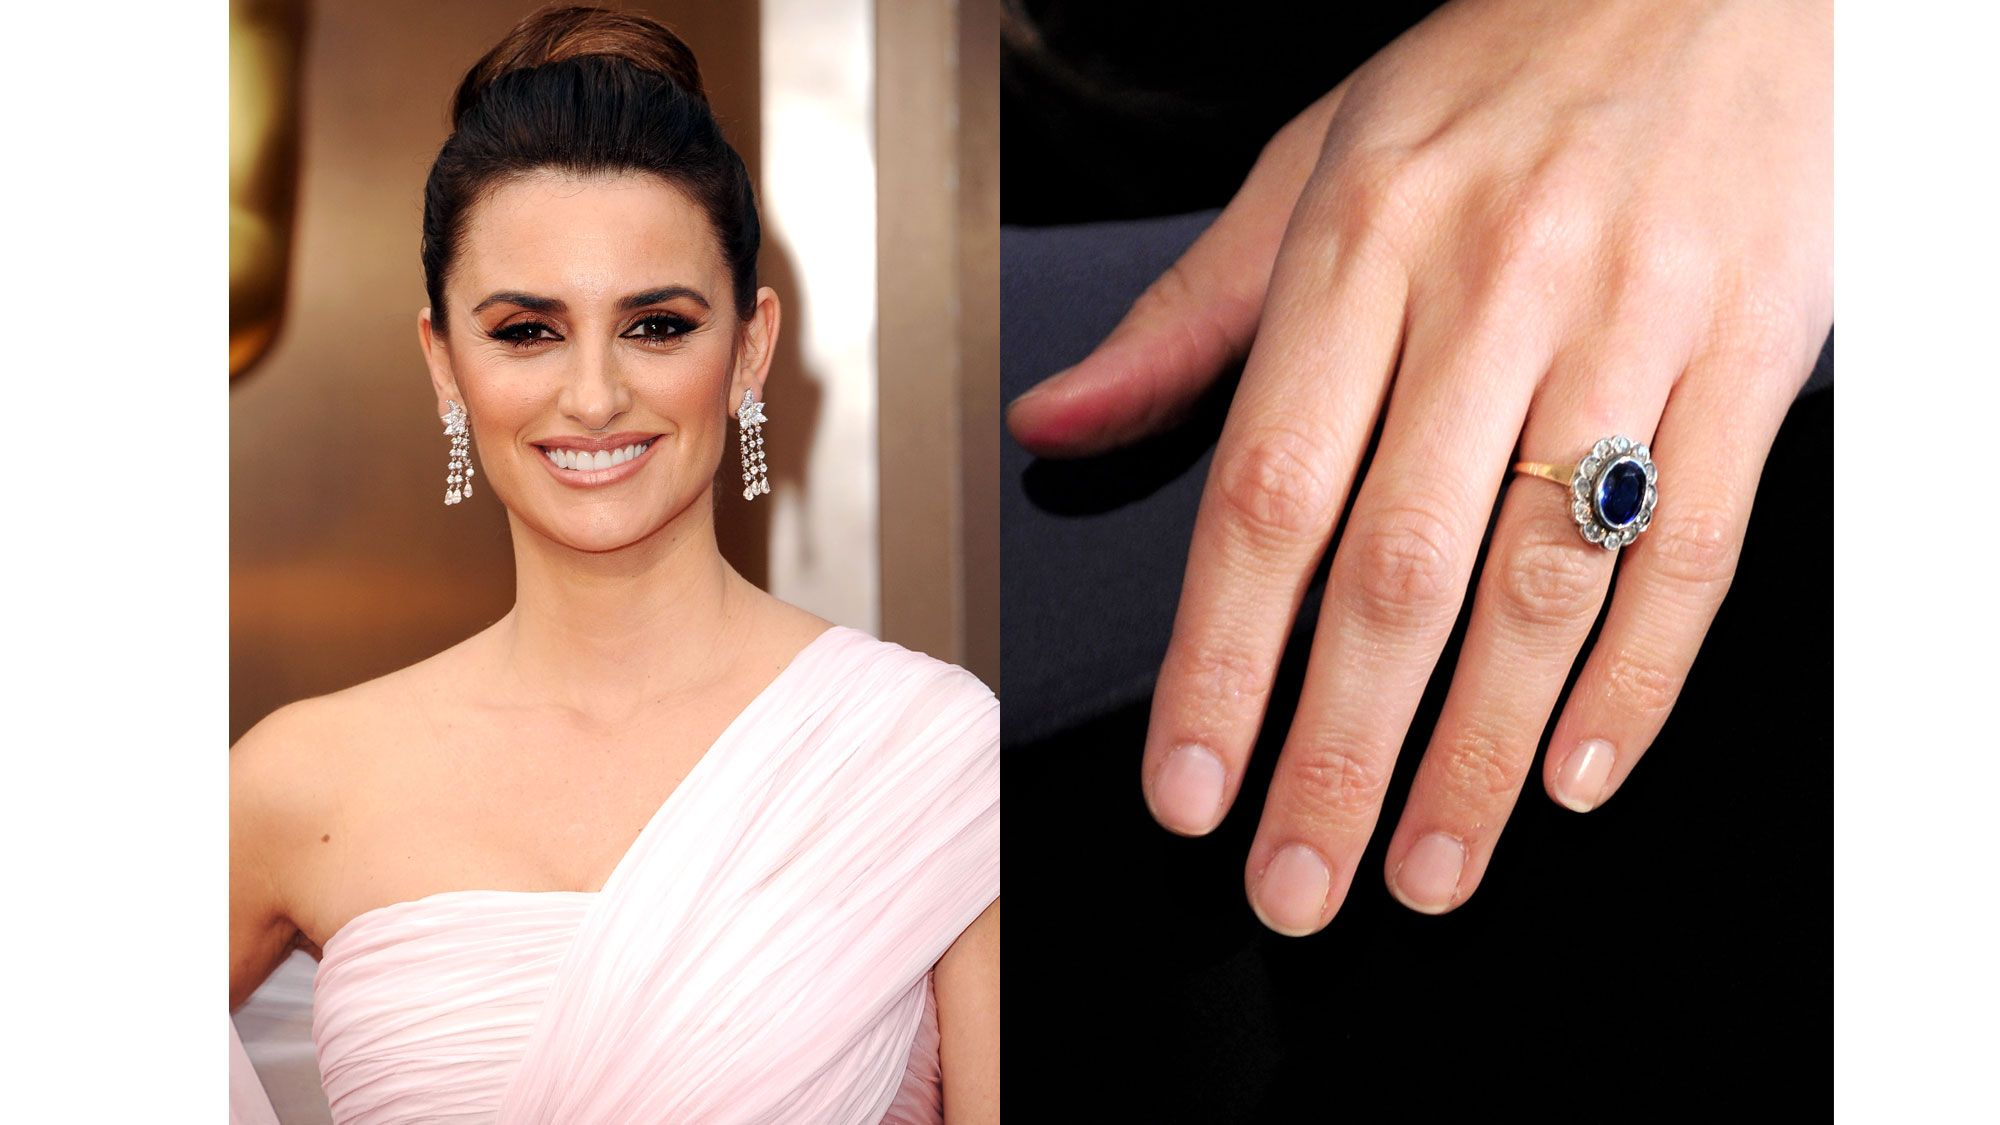 wedding rings celeb engagement pictures ring popsugar celebrity